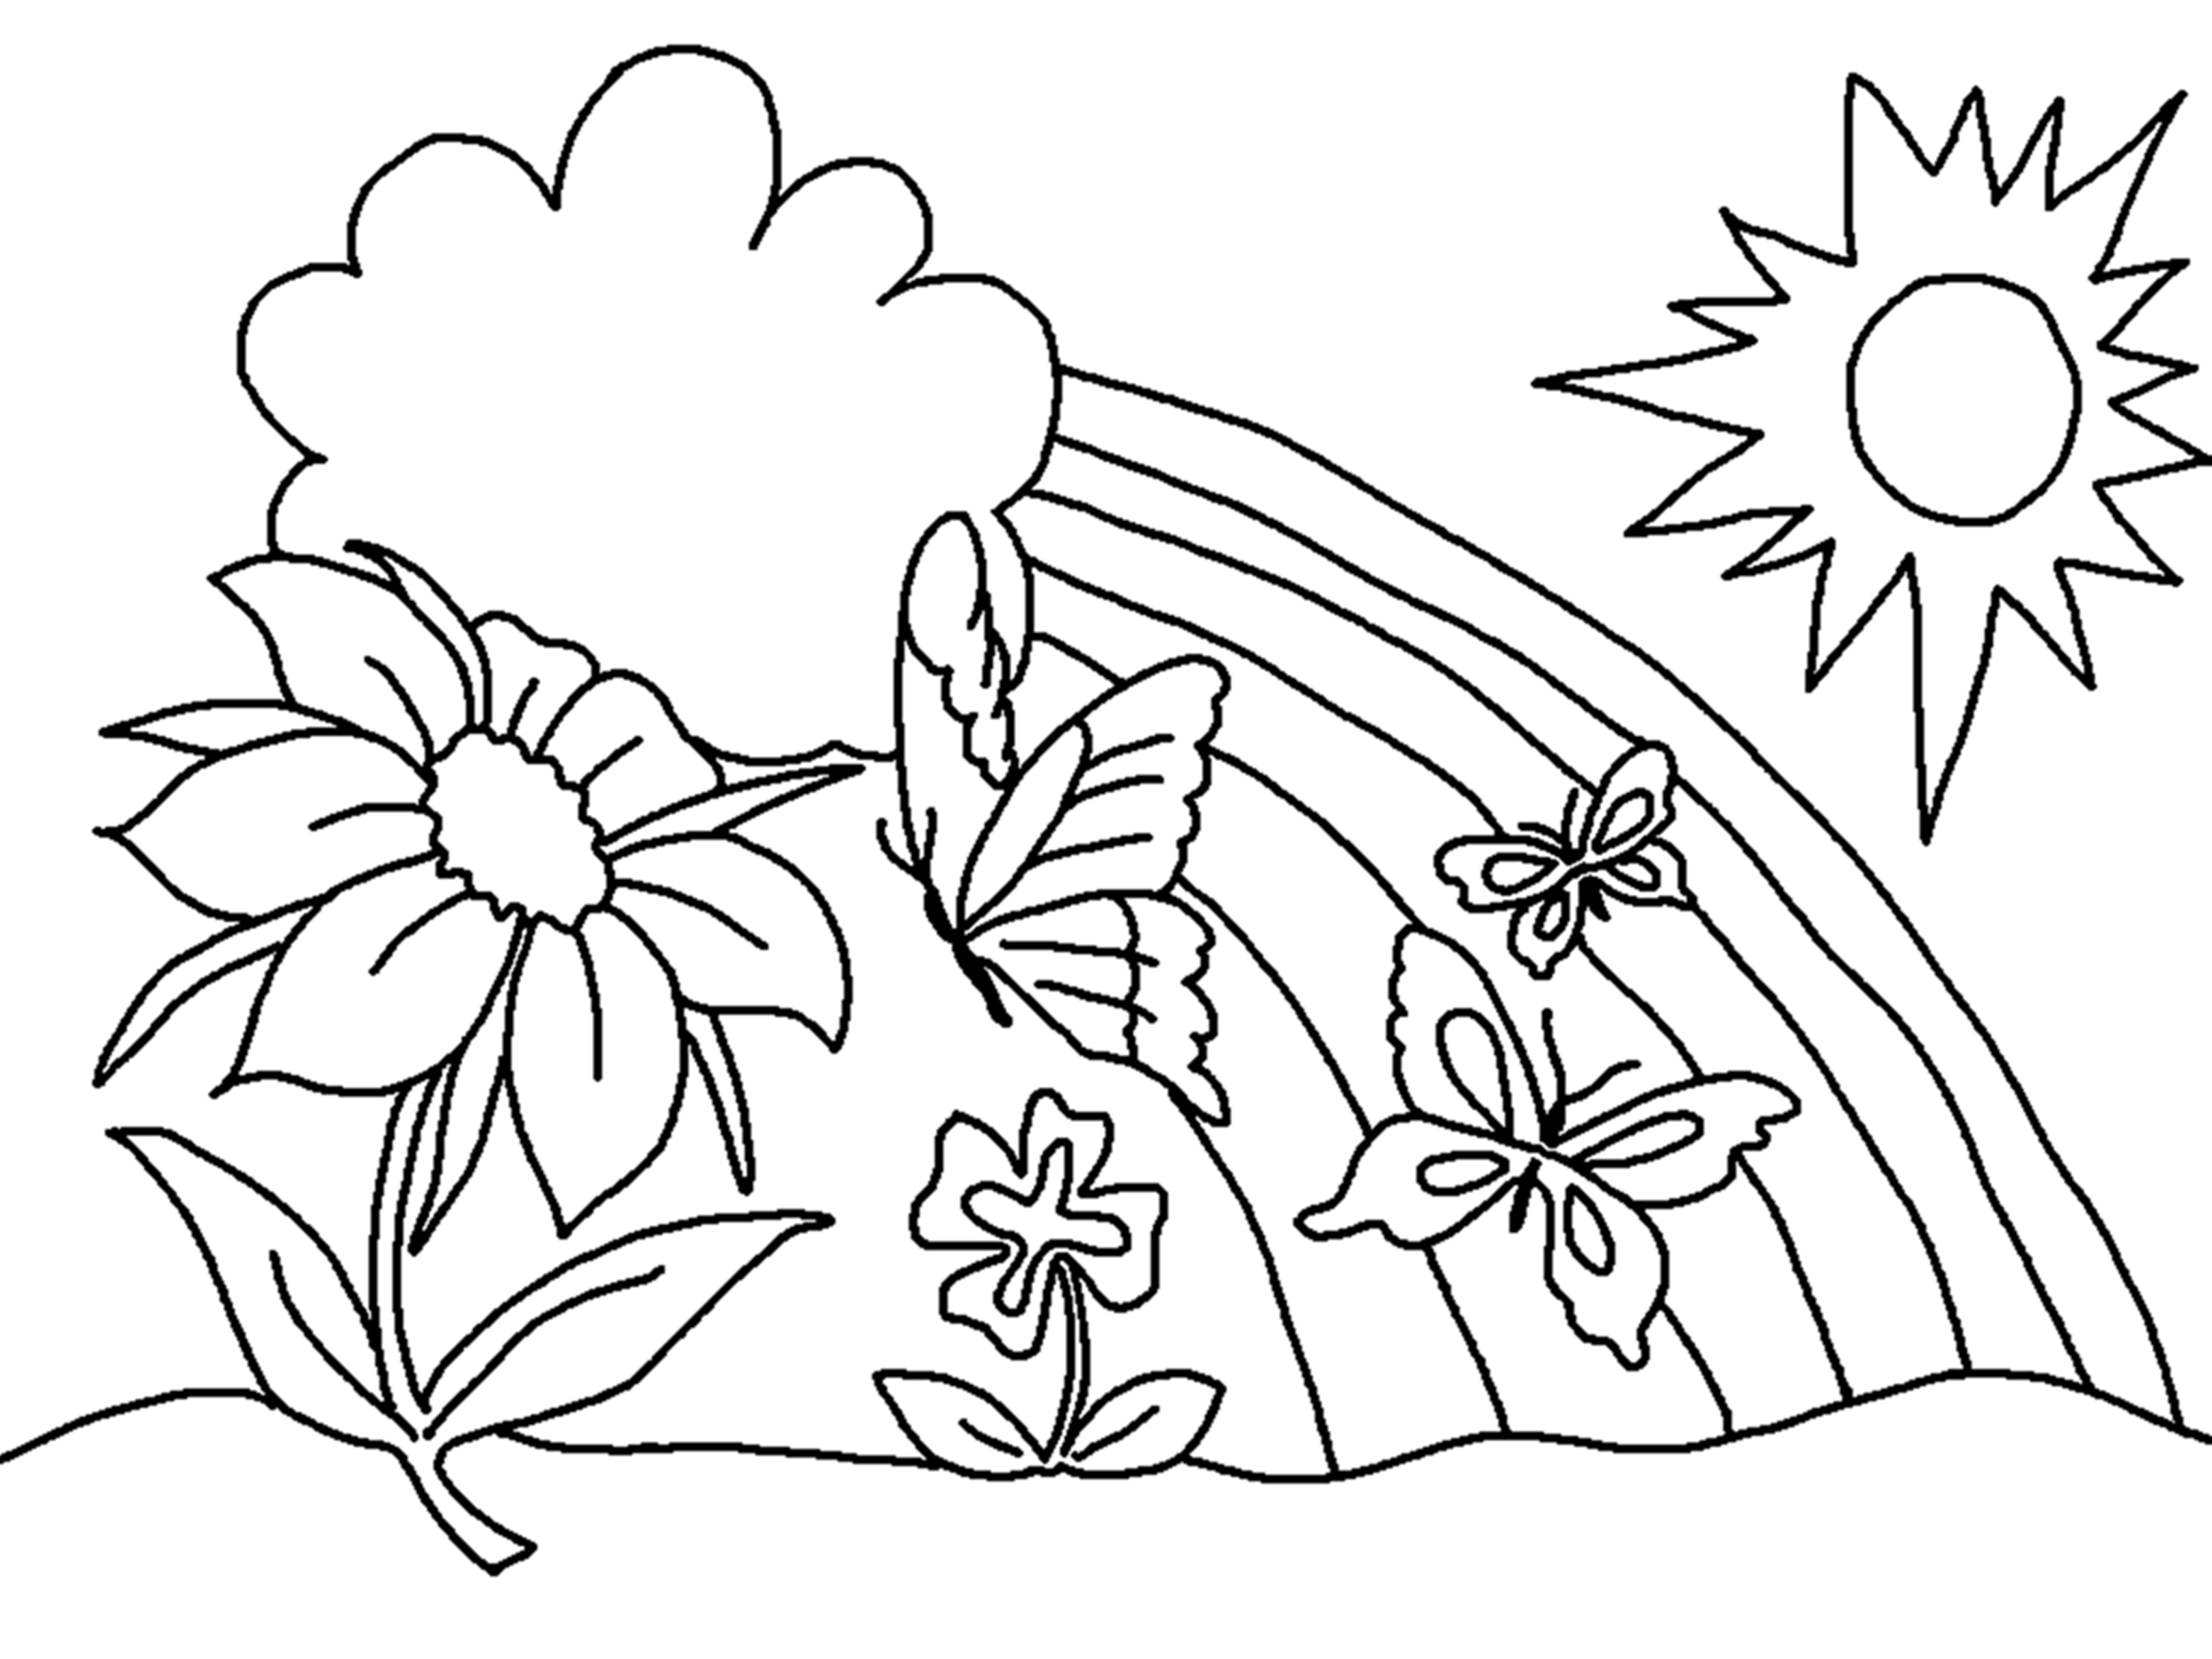 picture of flowers to colour flower coloring pages getcoloringpagescom flowers picture to colour of